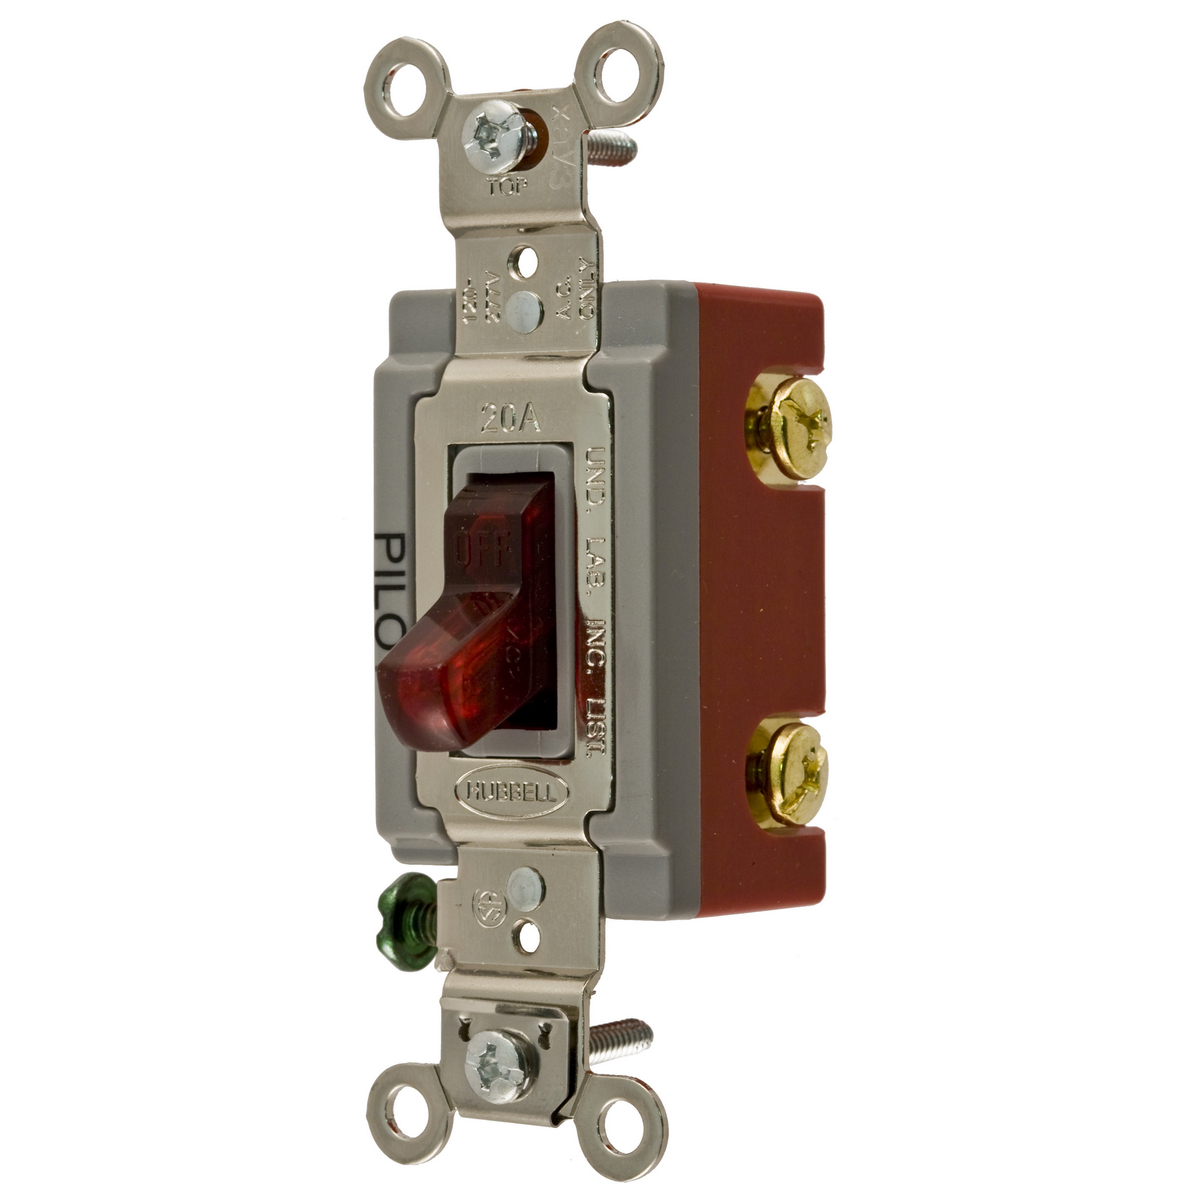 Hubbell HBL1222PL 20 Amp 120/277 VAC 2-Pole Red Toggle Switch